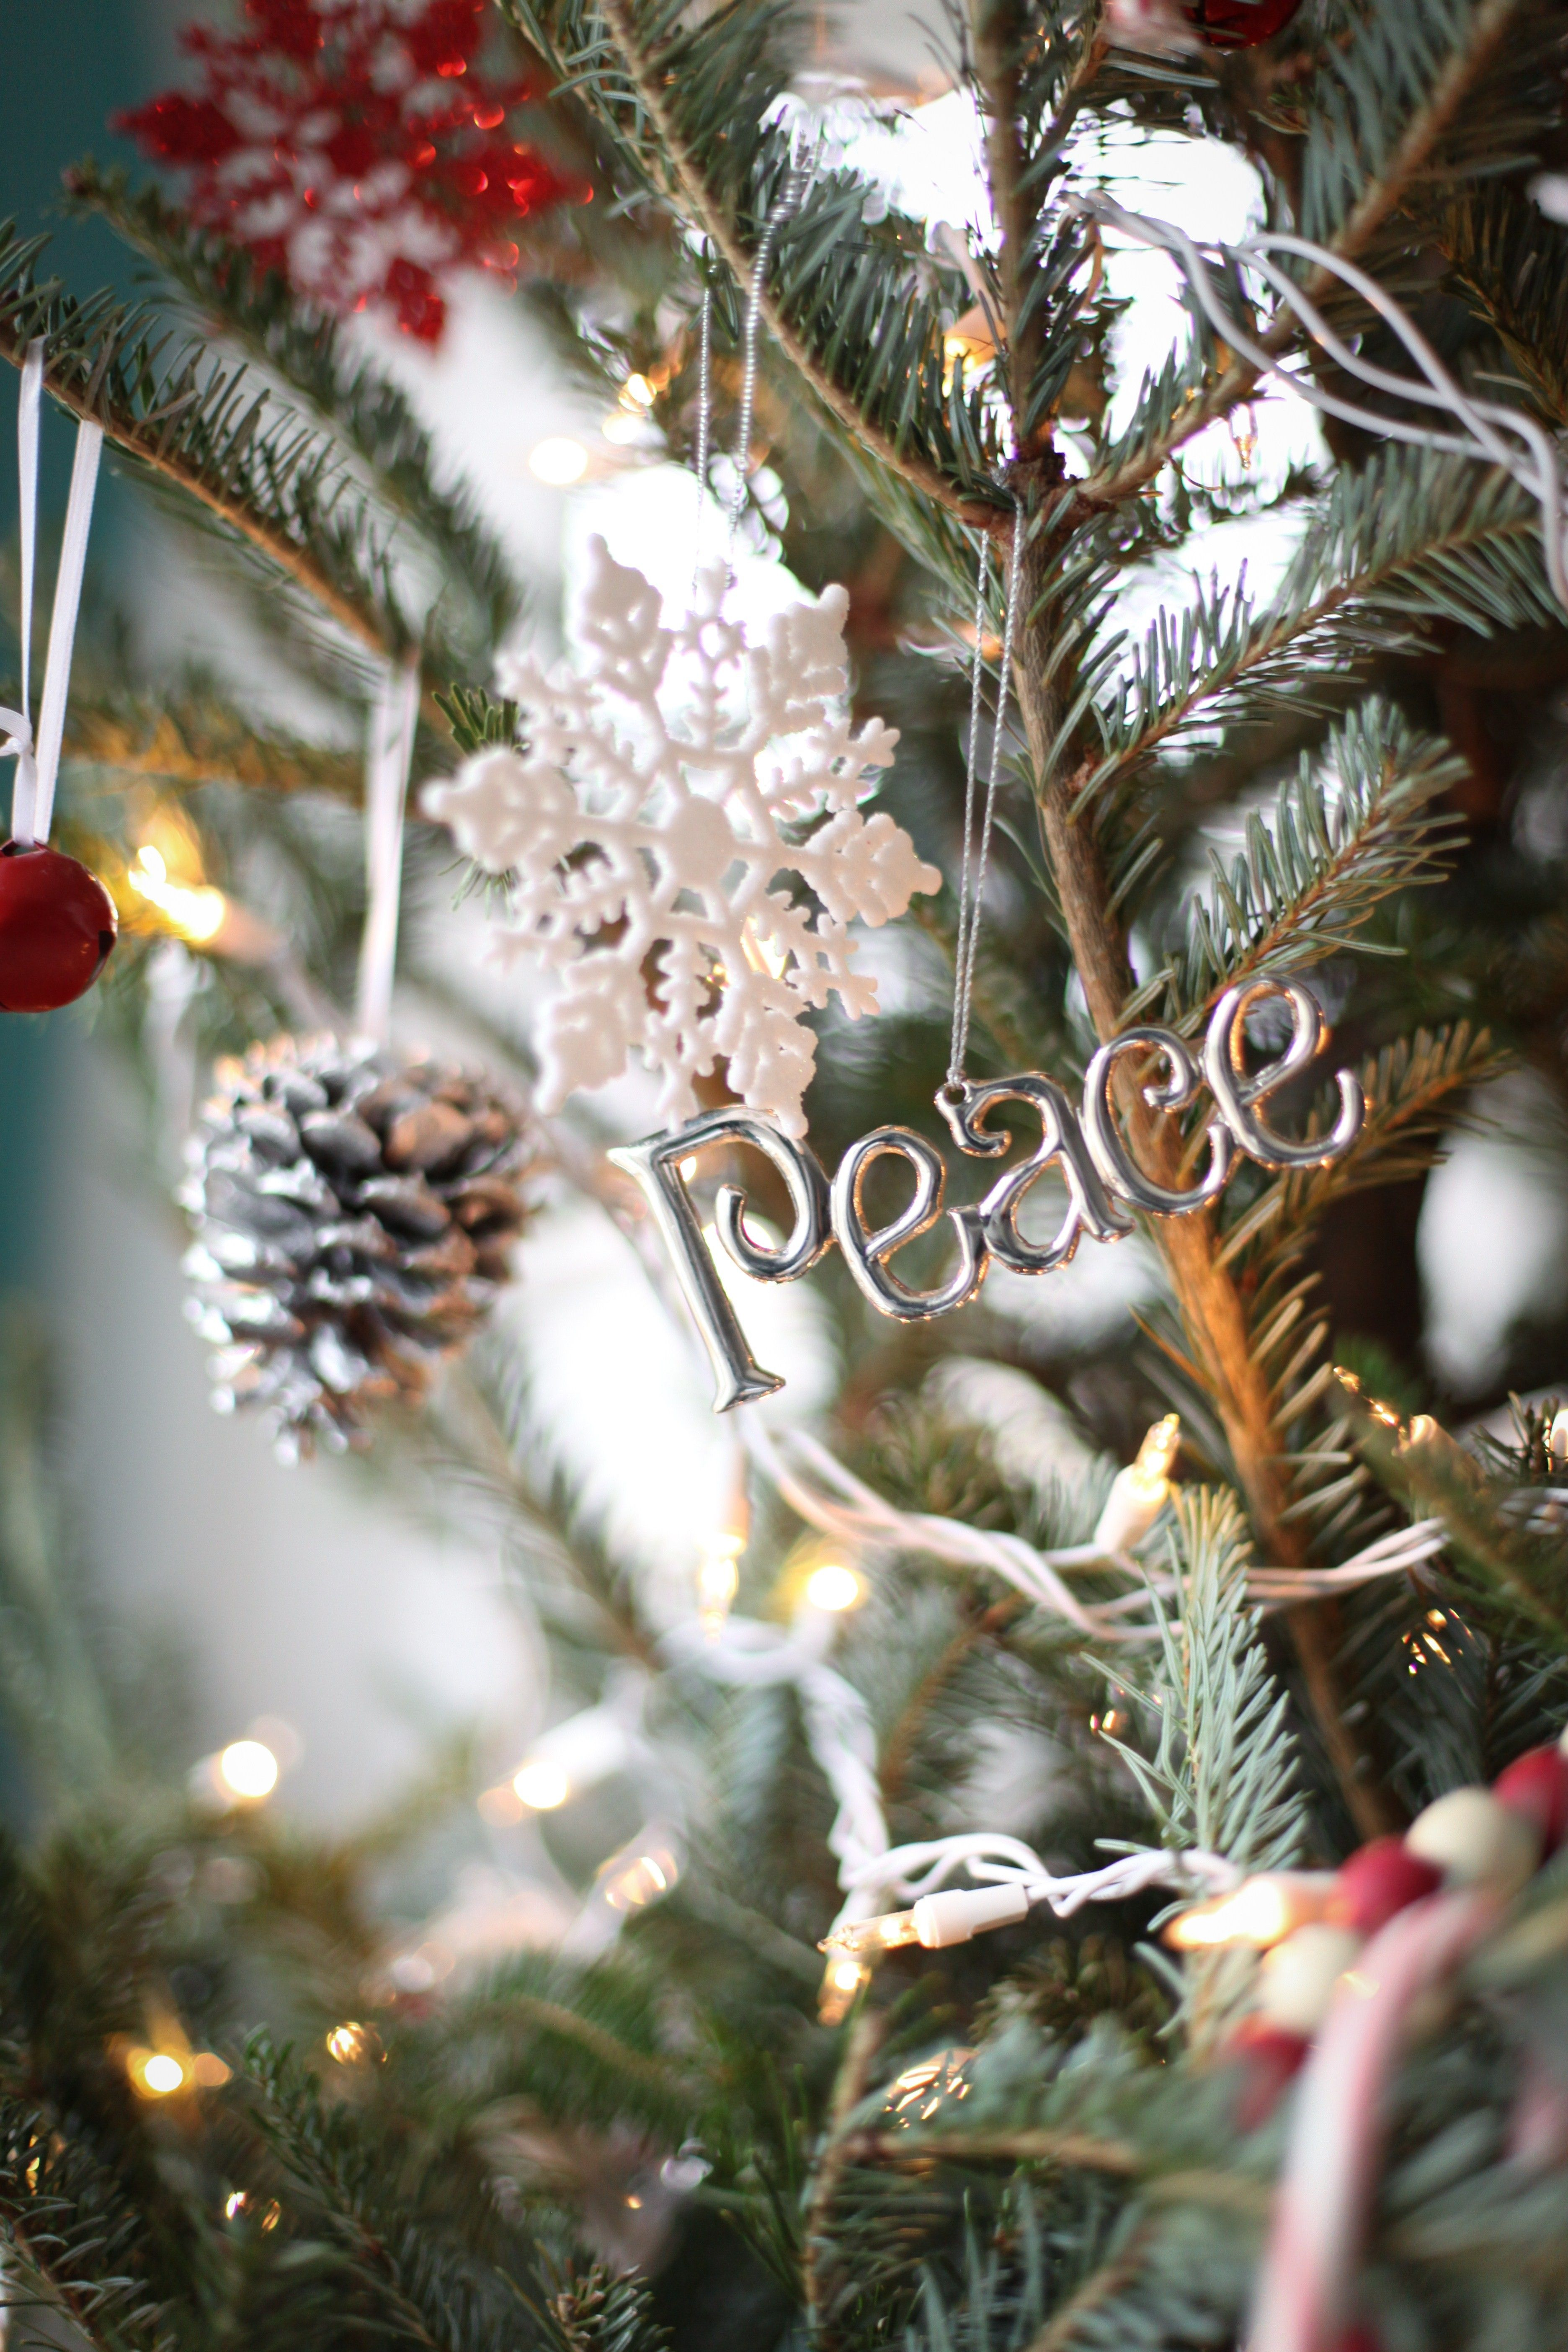 An image of Christmas ornaments on a tree.